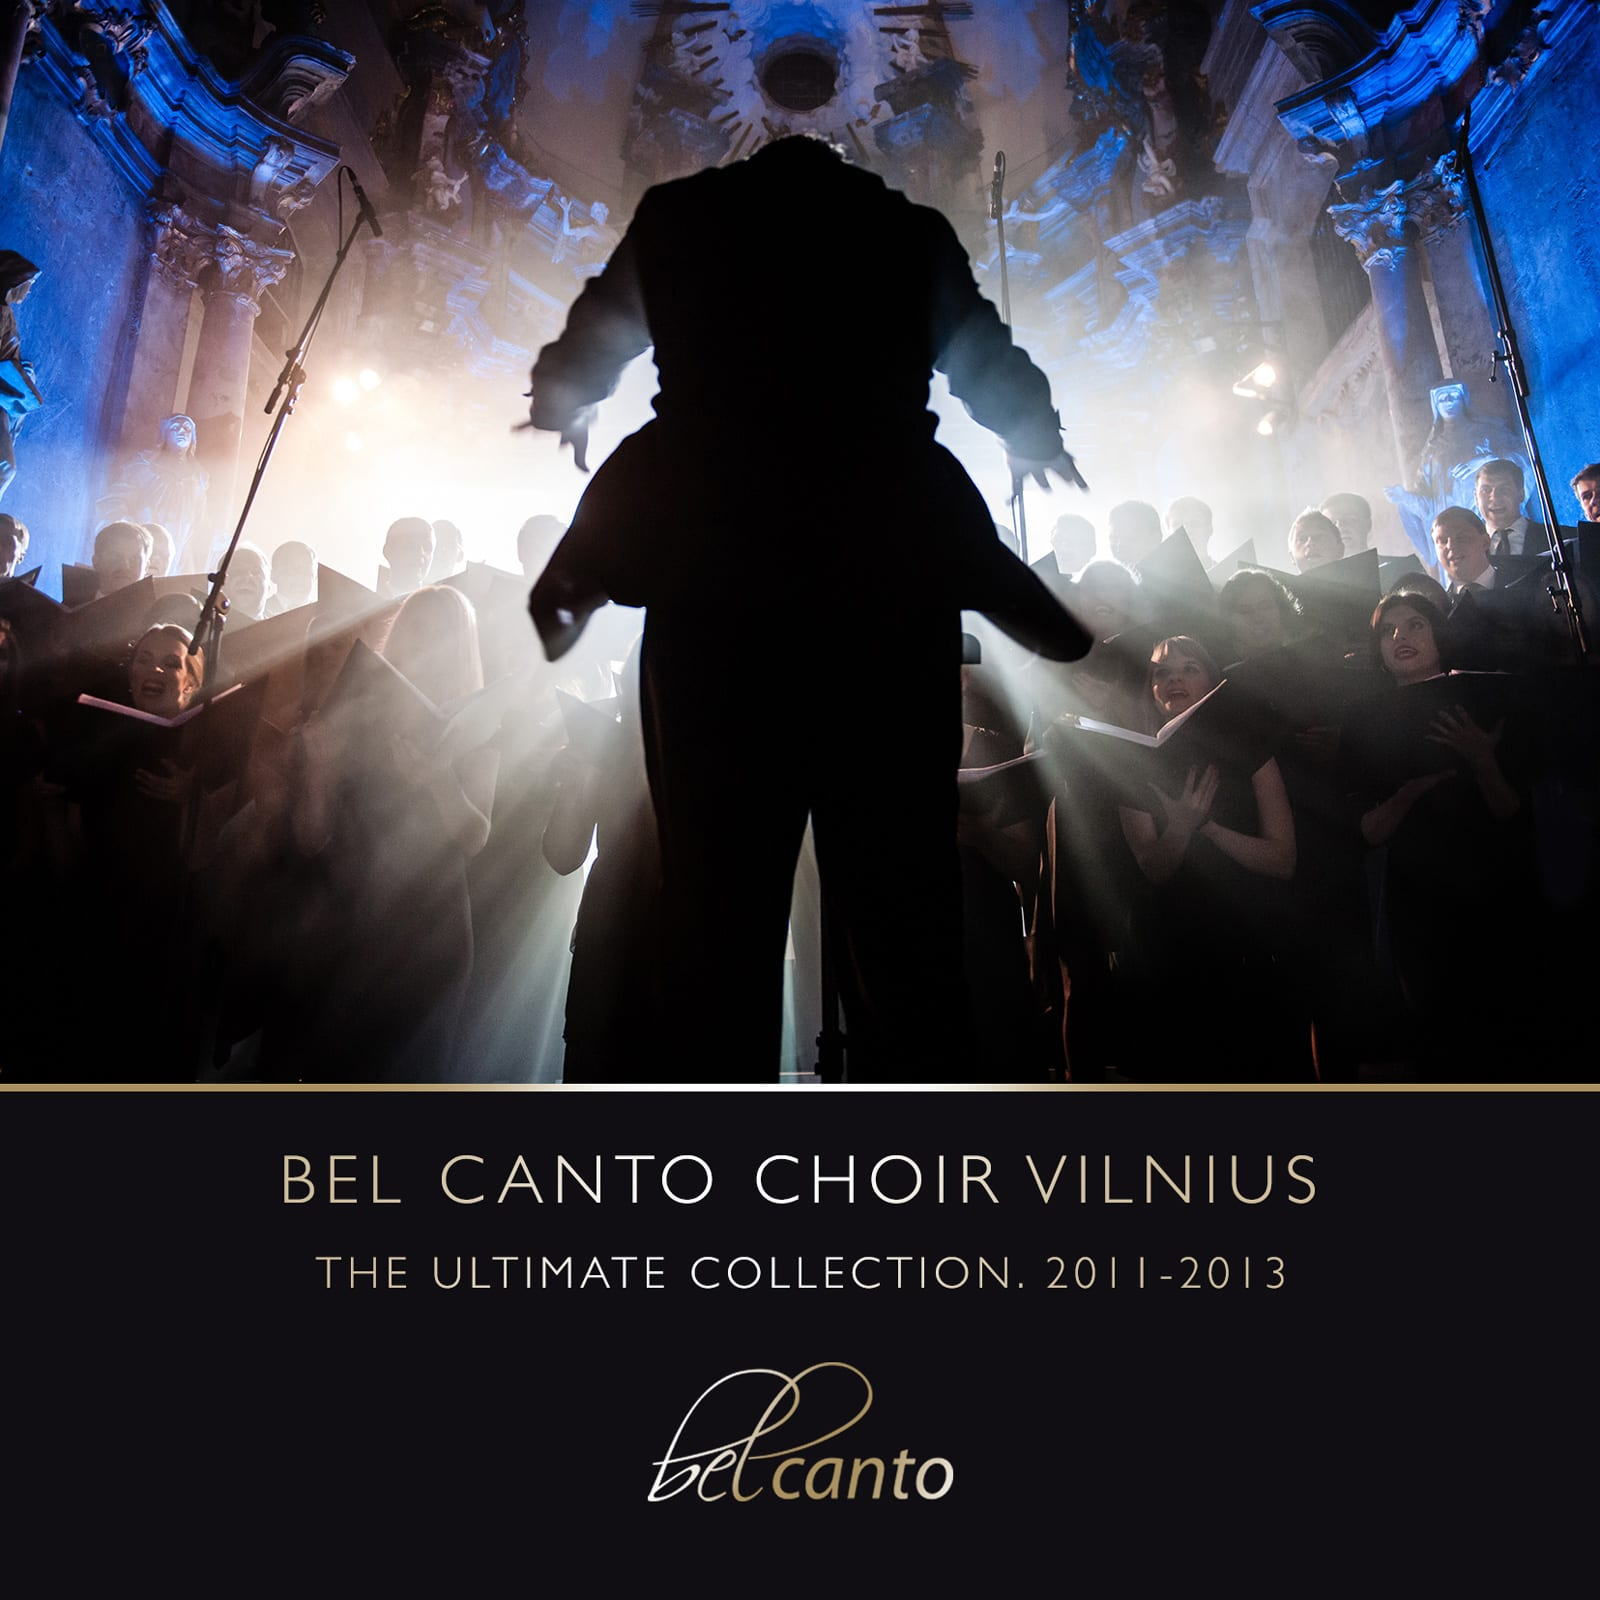 Bel Canto Choir Vilnius_The Ultimate Collection_visual for iTunes_1600px